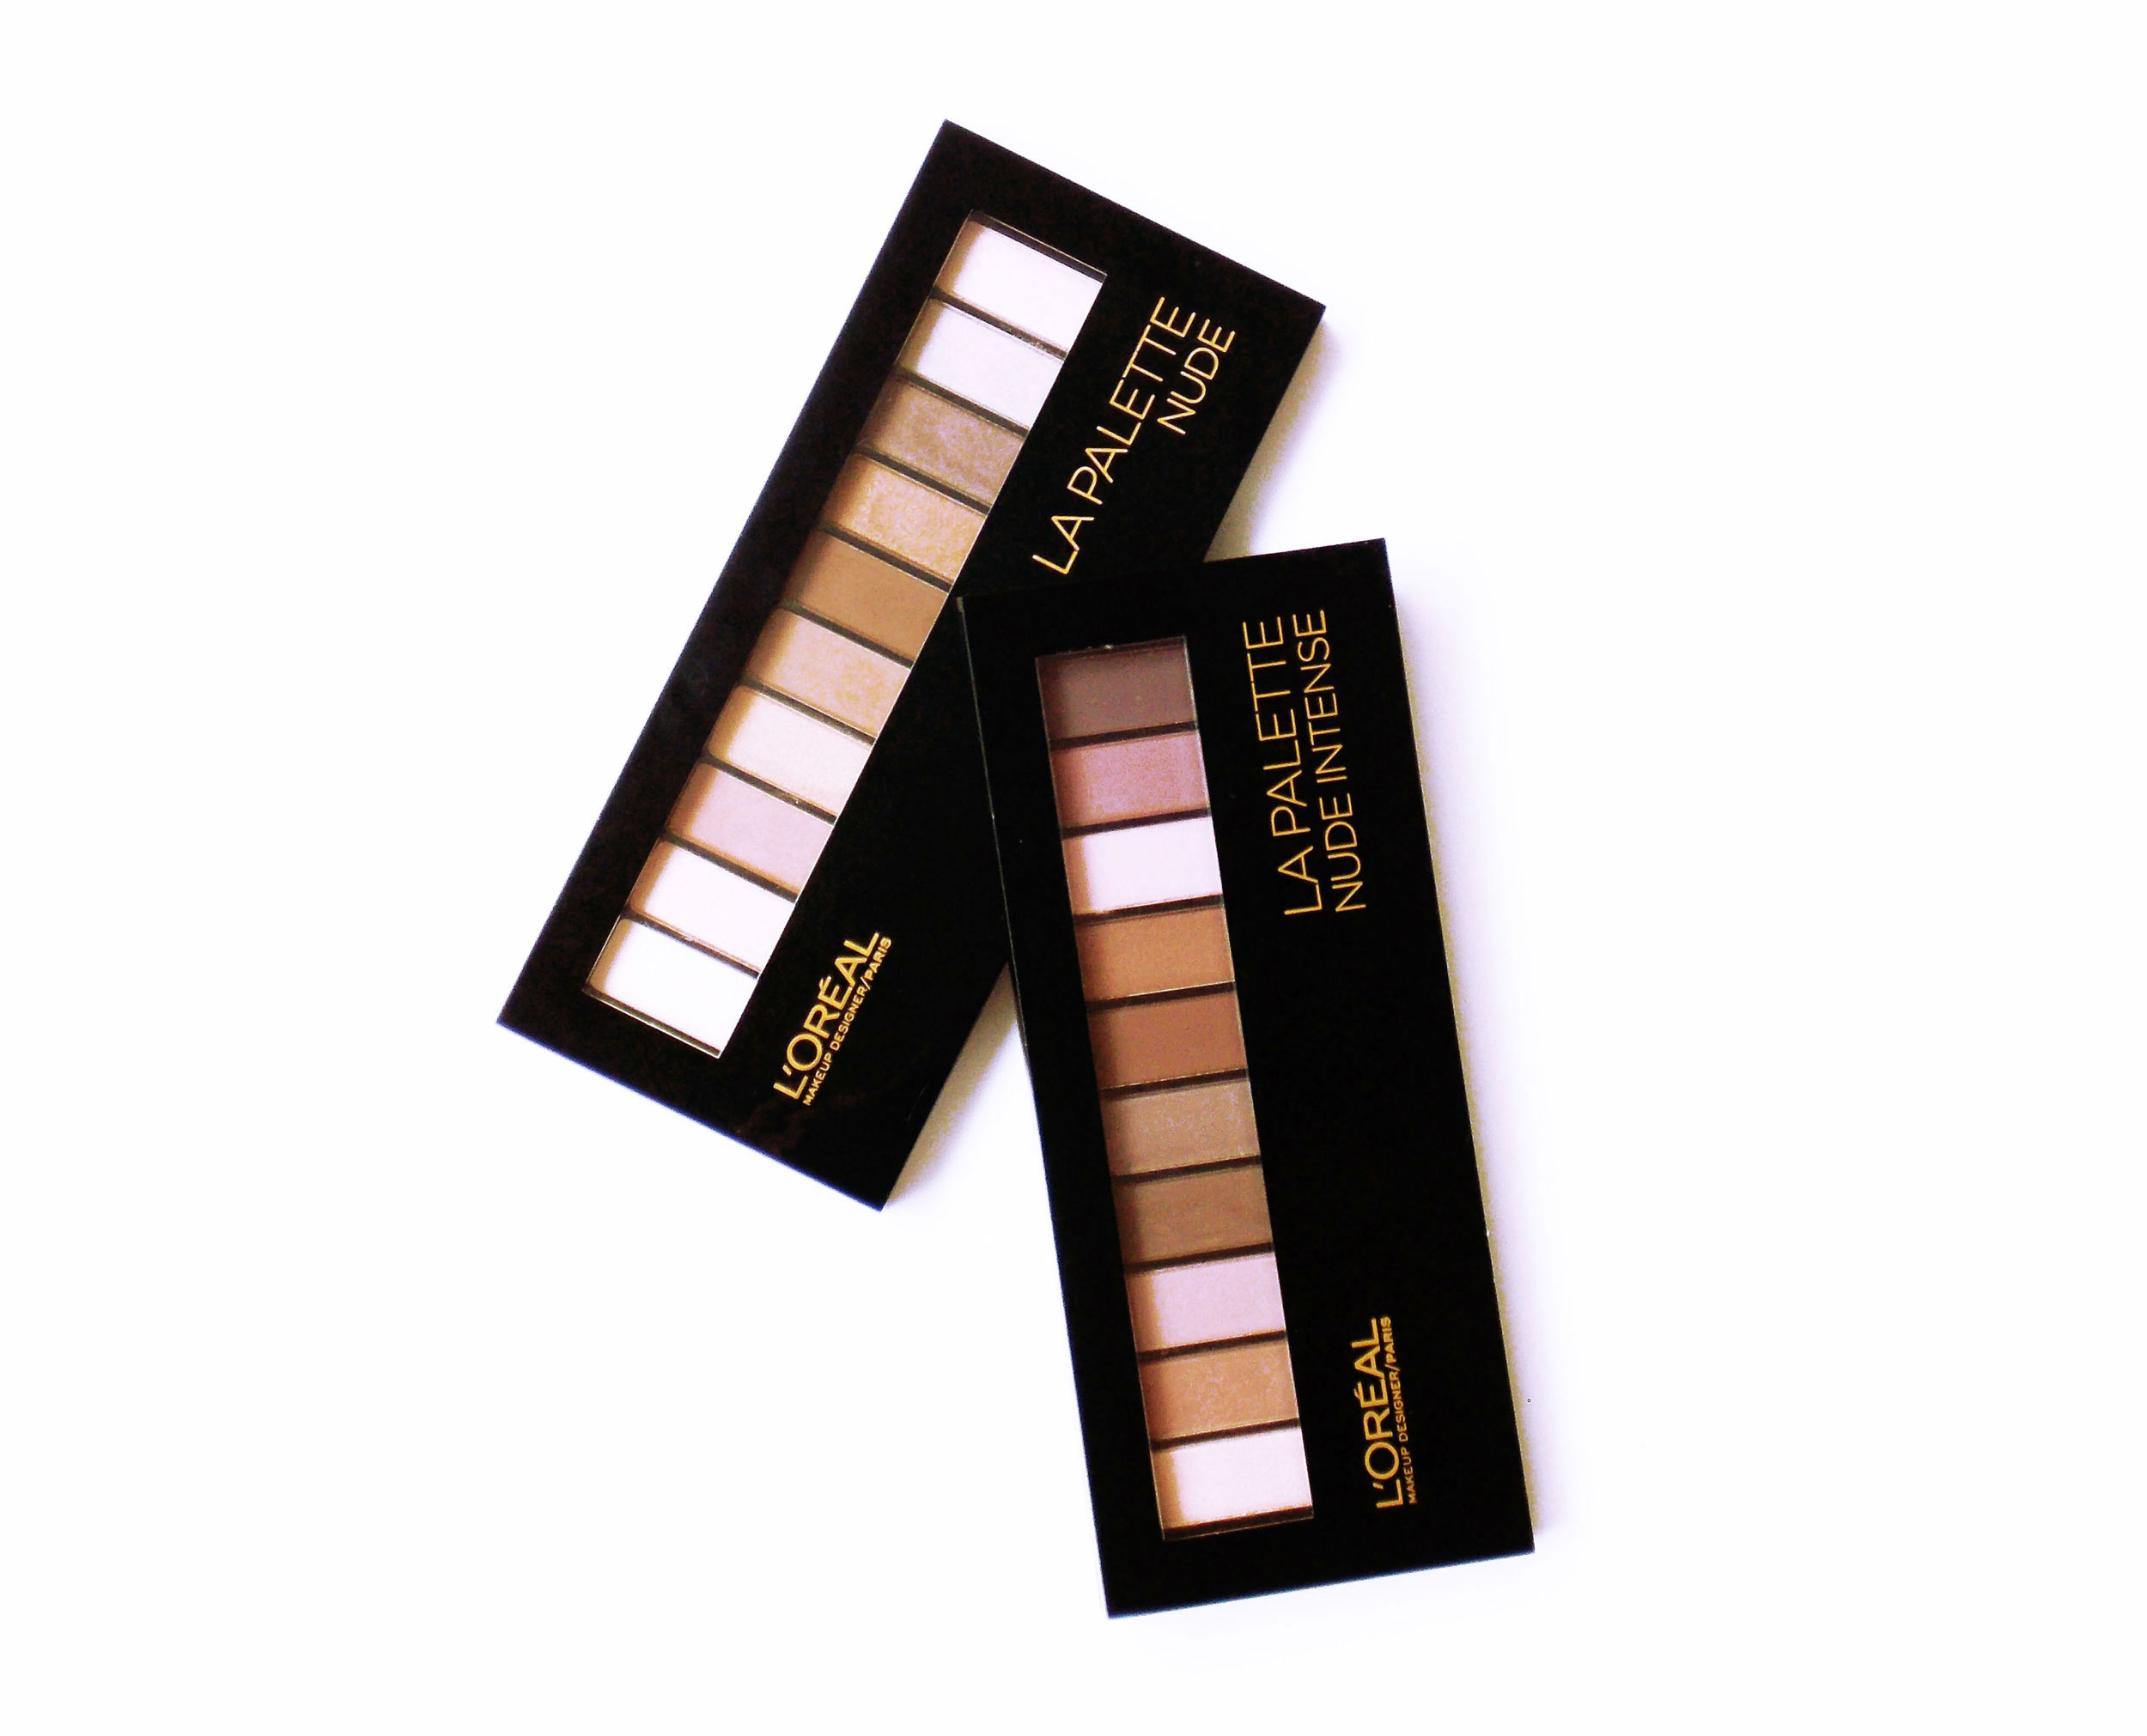 L'Oreal La Palette Nude 1 and 2 Review and Swatches